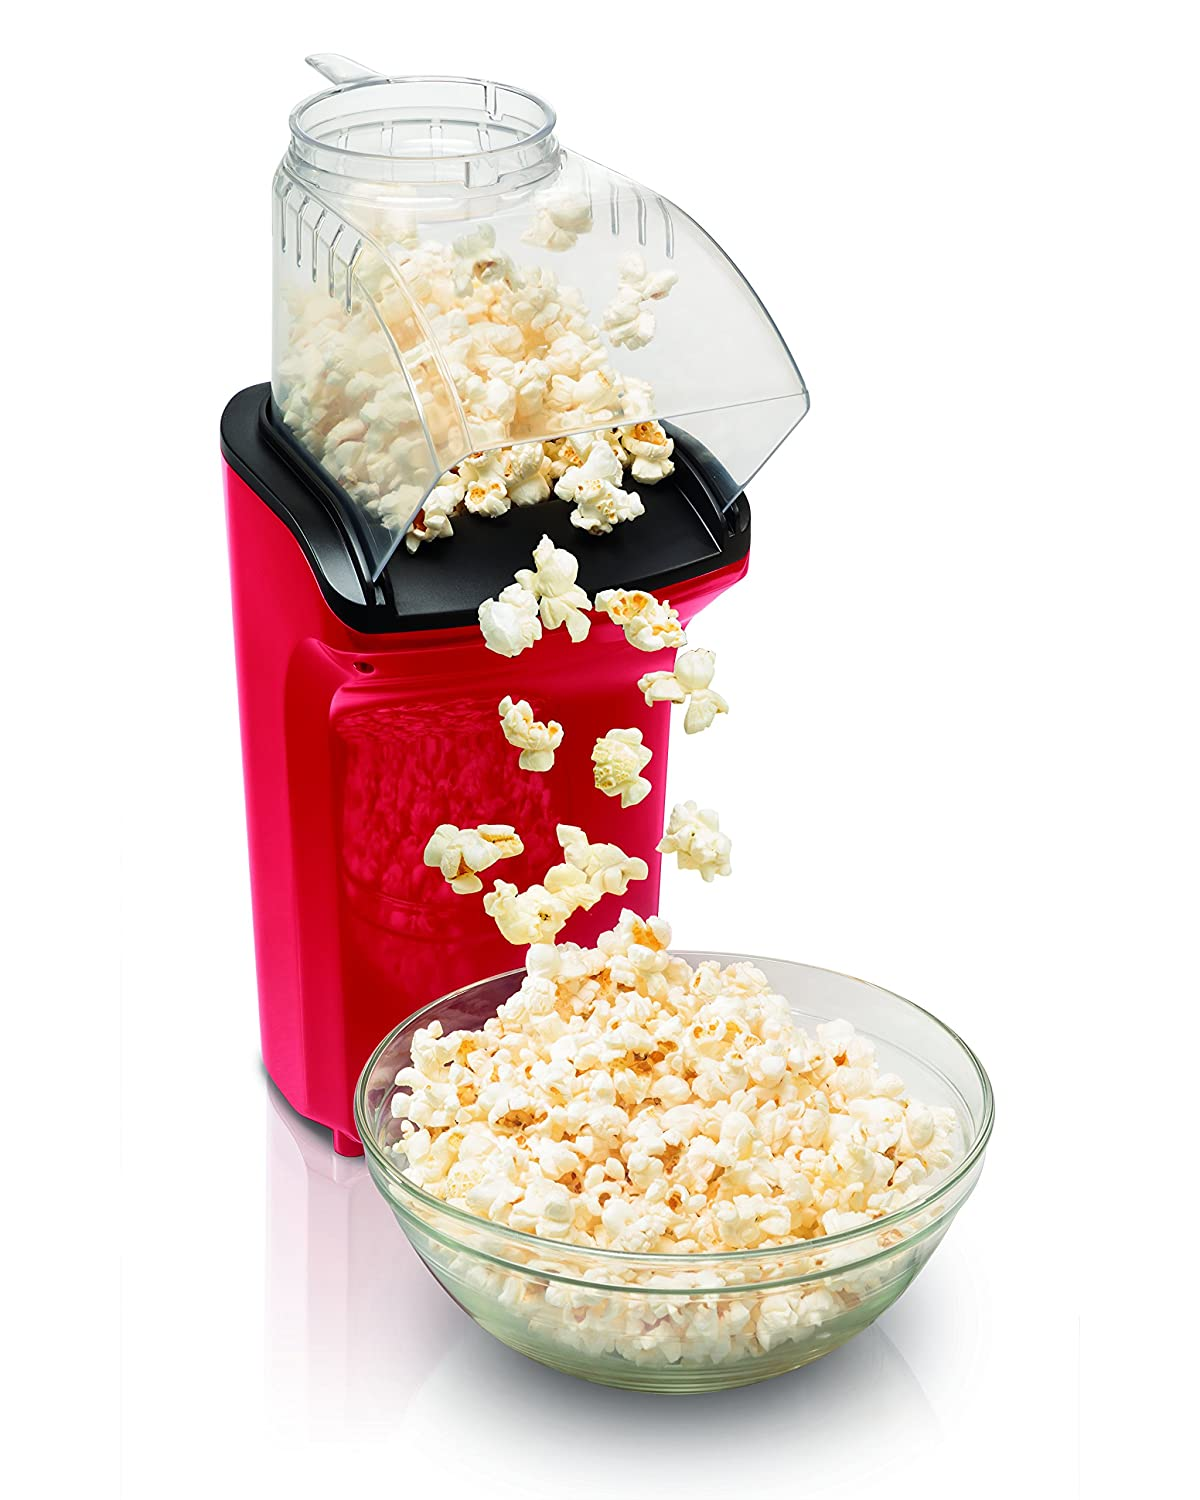 Hamilton Beach 040094734009 73400 Hot Air Popcorn Popper, Red